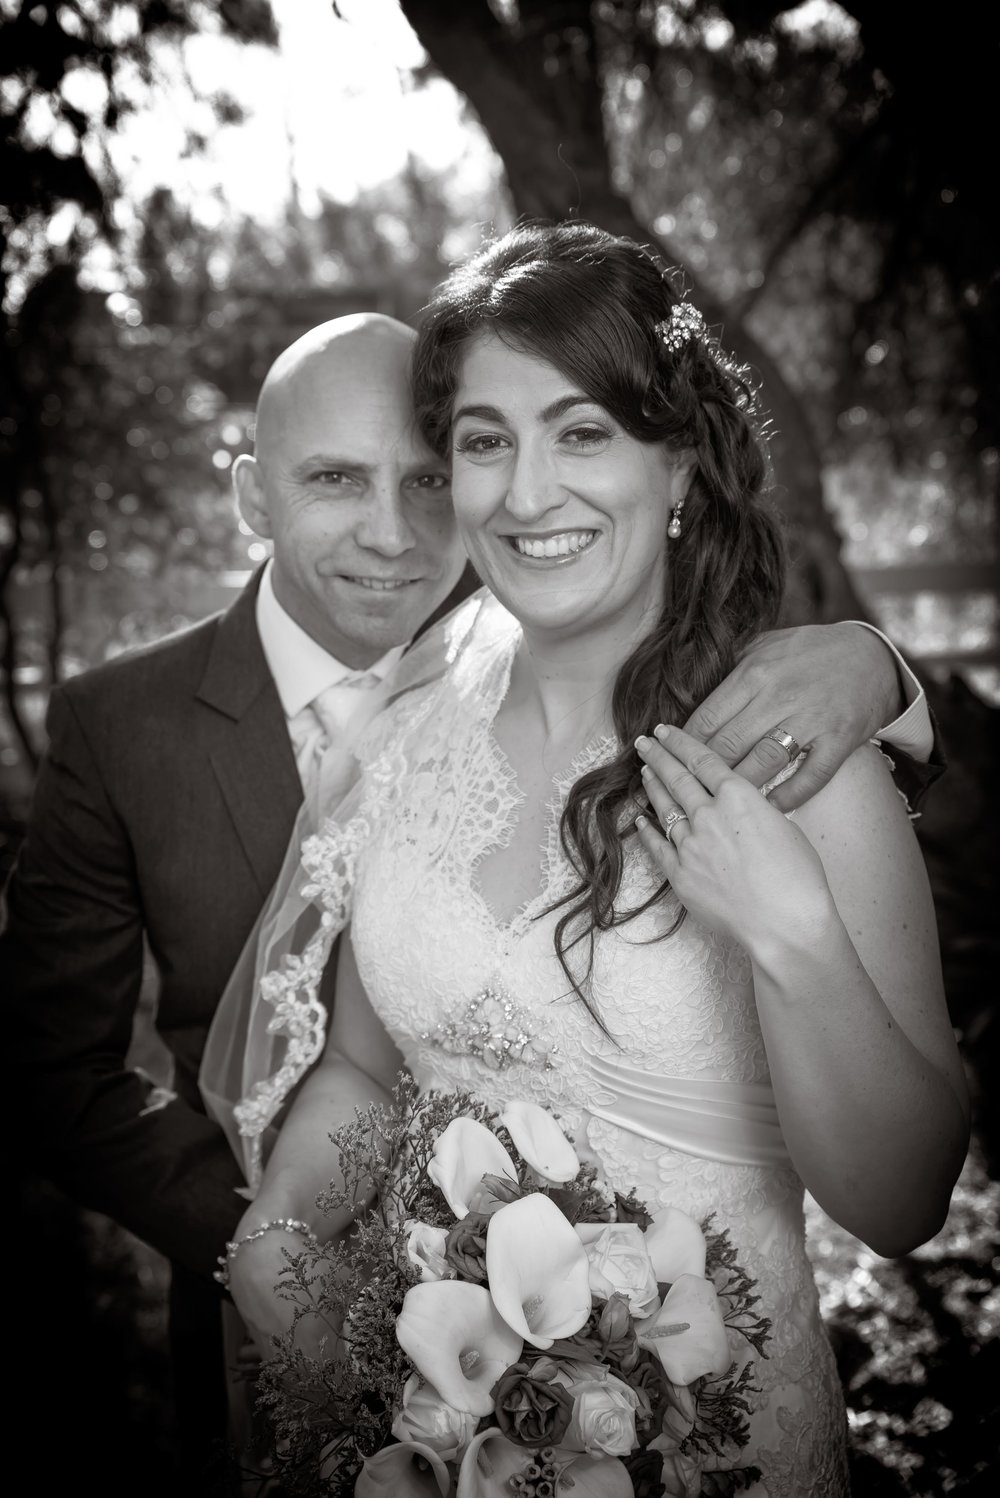 Mark Carniato Photography - Wedding Photography Melbourne - Maria and Gary-11.jpg